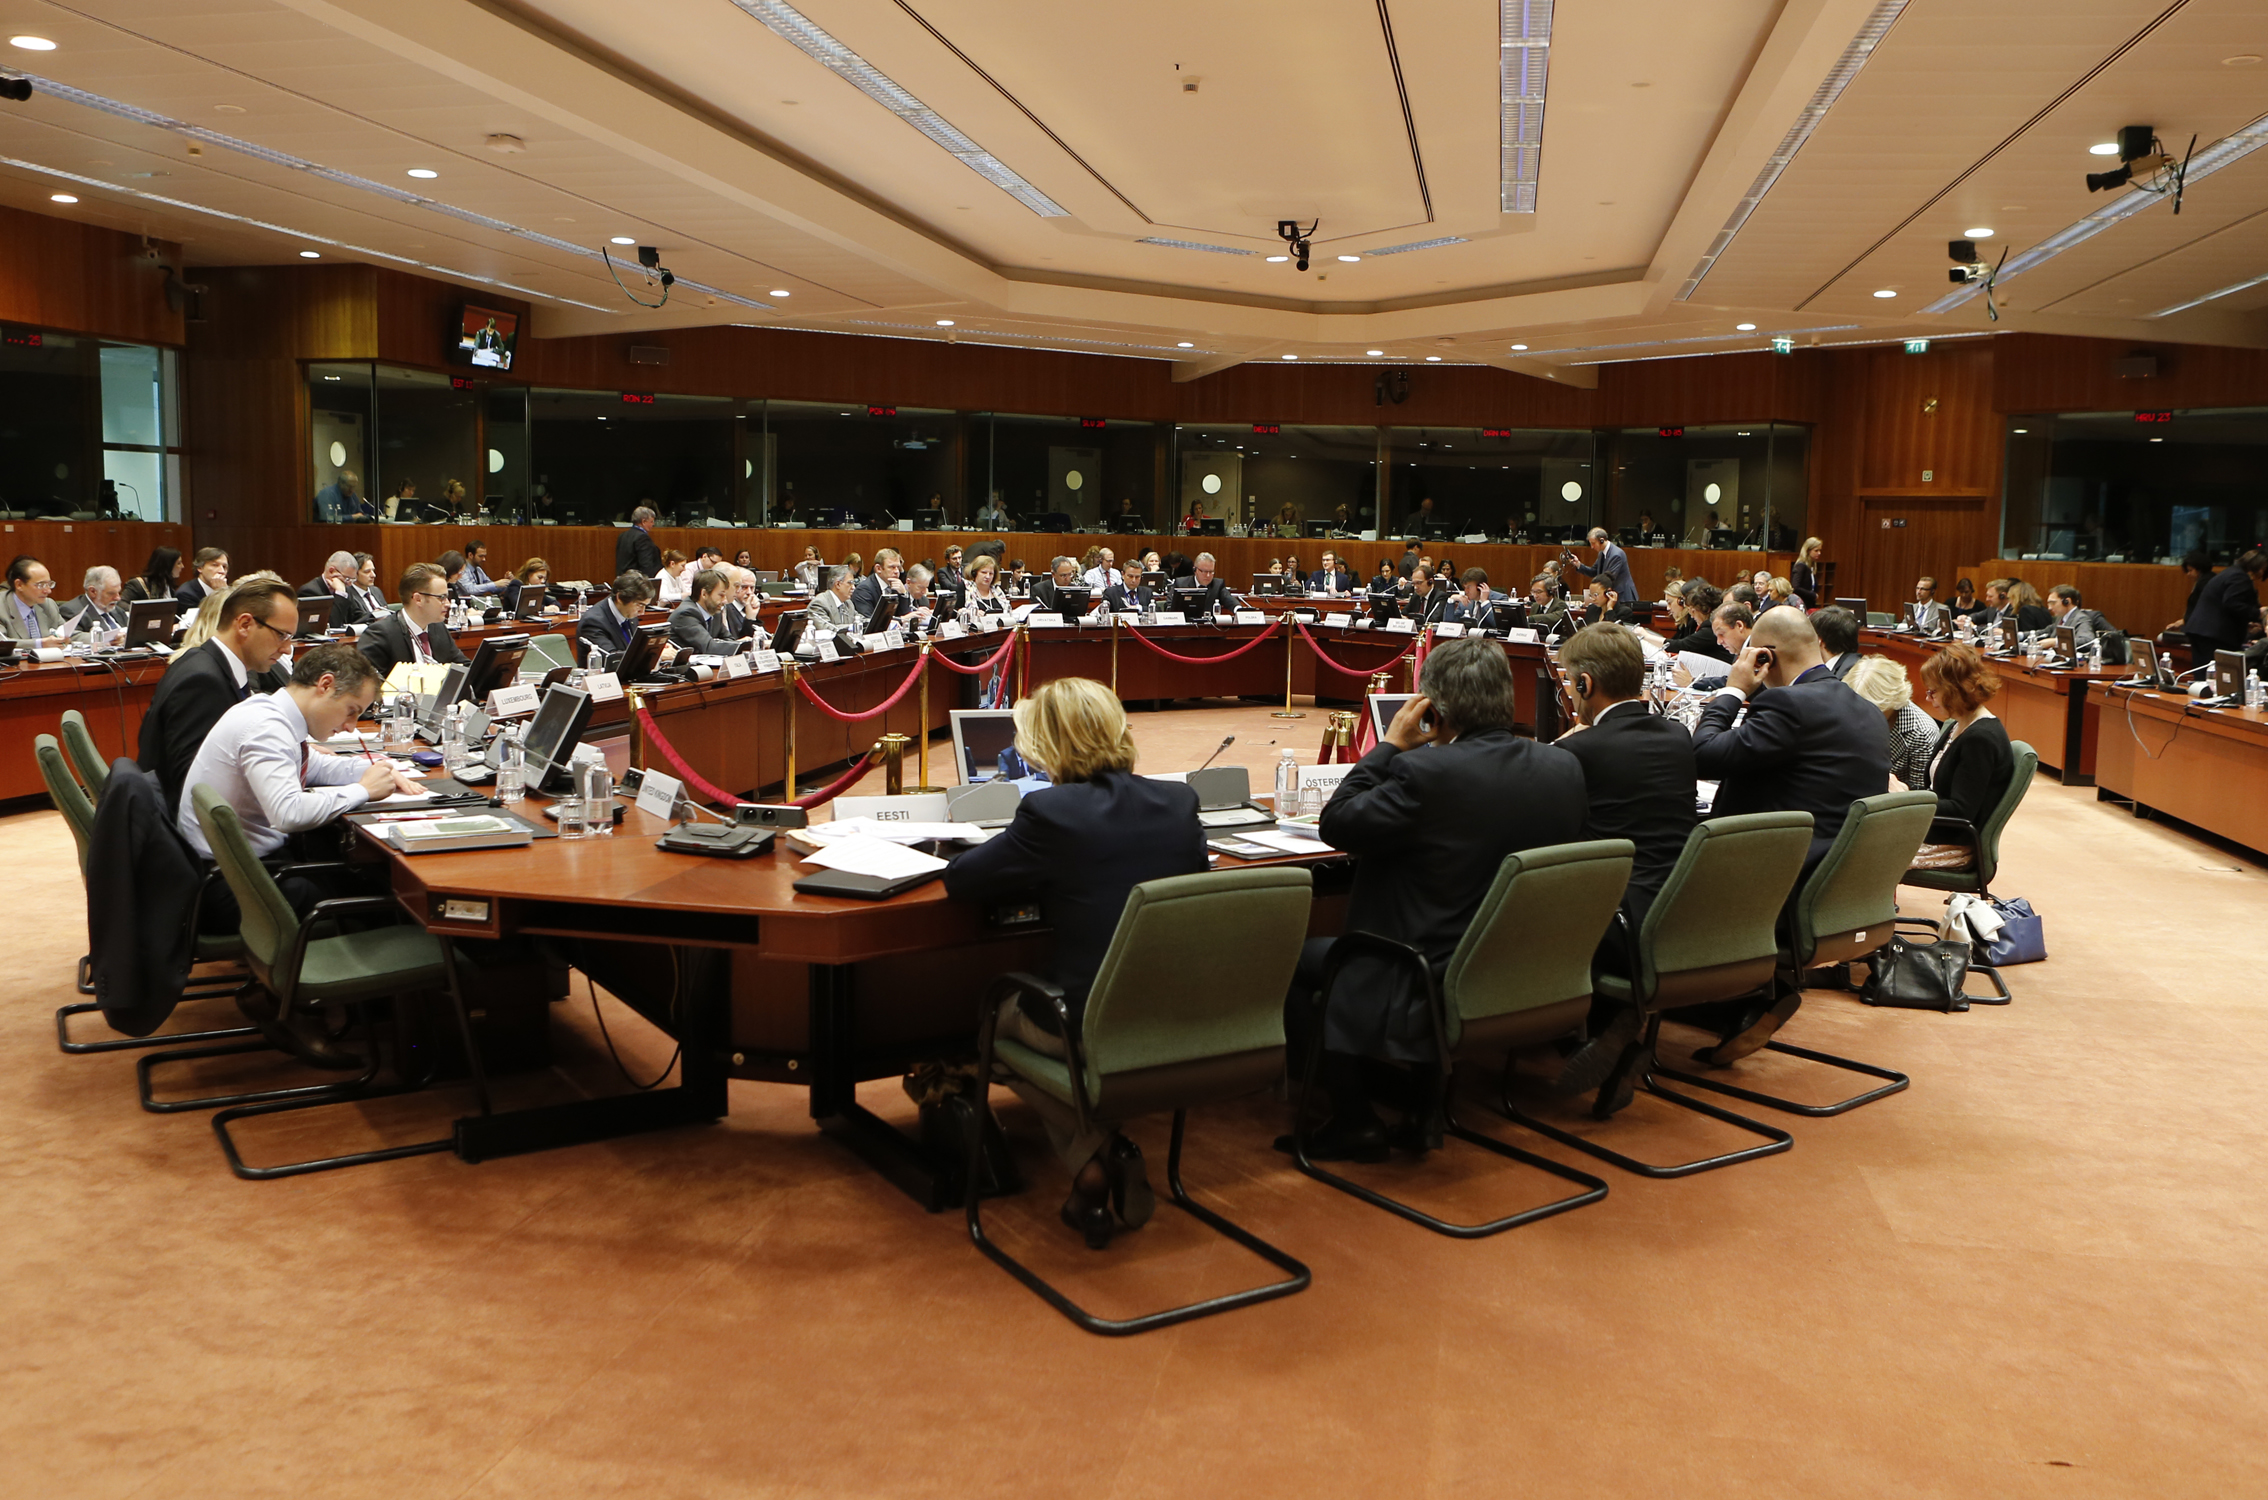 The Council of the European Union, under the leadership of the Italian Presidency, gathered in Brussels on 25 November 2014. Photo: © European Union